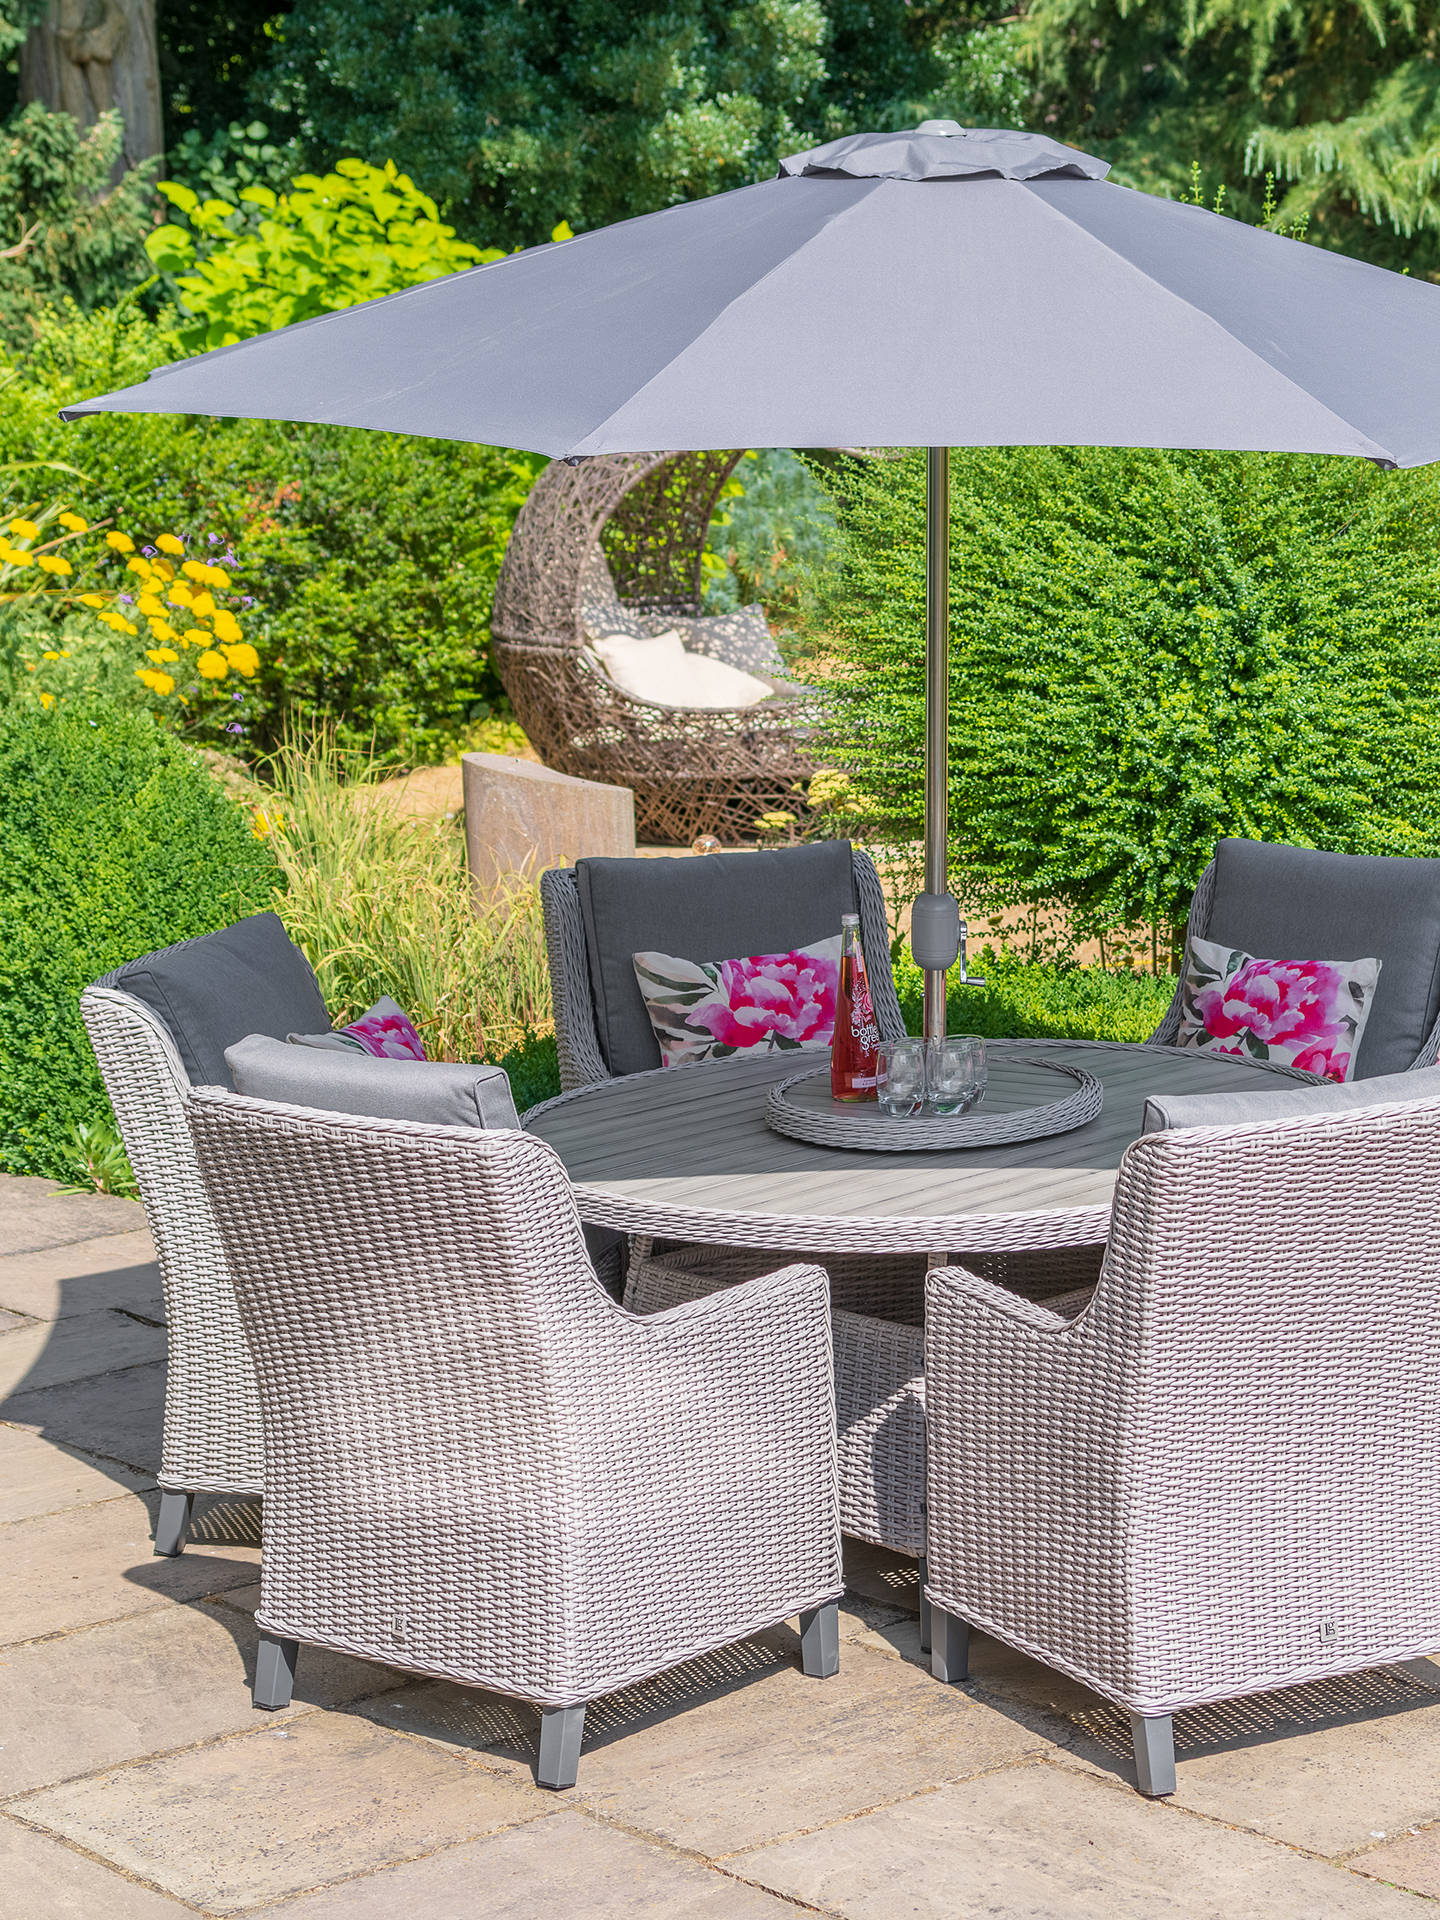 LG Outdoor Oslo 7-Seat Round Garden Table and Chairs Dining Set